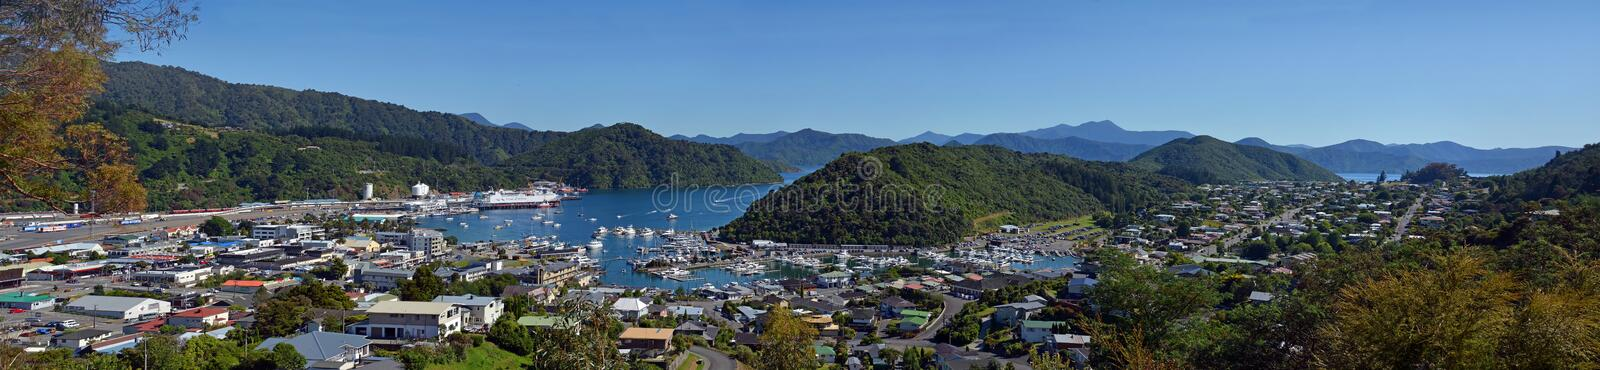 Queen Charlotte Sound, Picton & Waikawa Panorama, New Zealand royalty free stock images